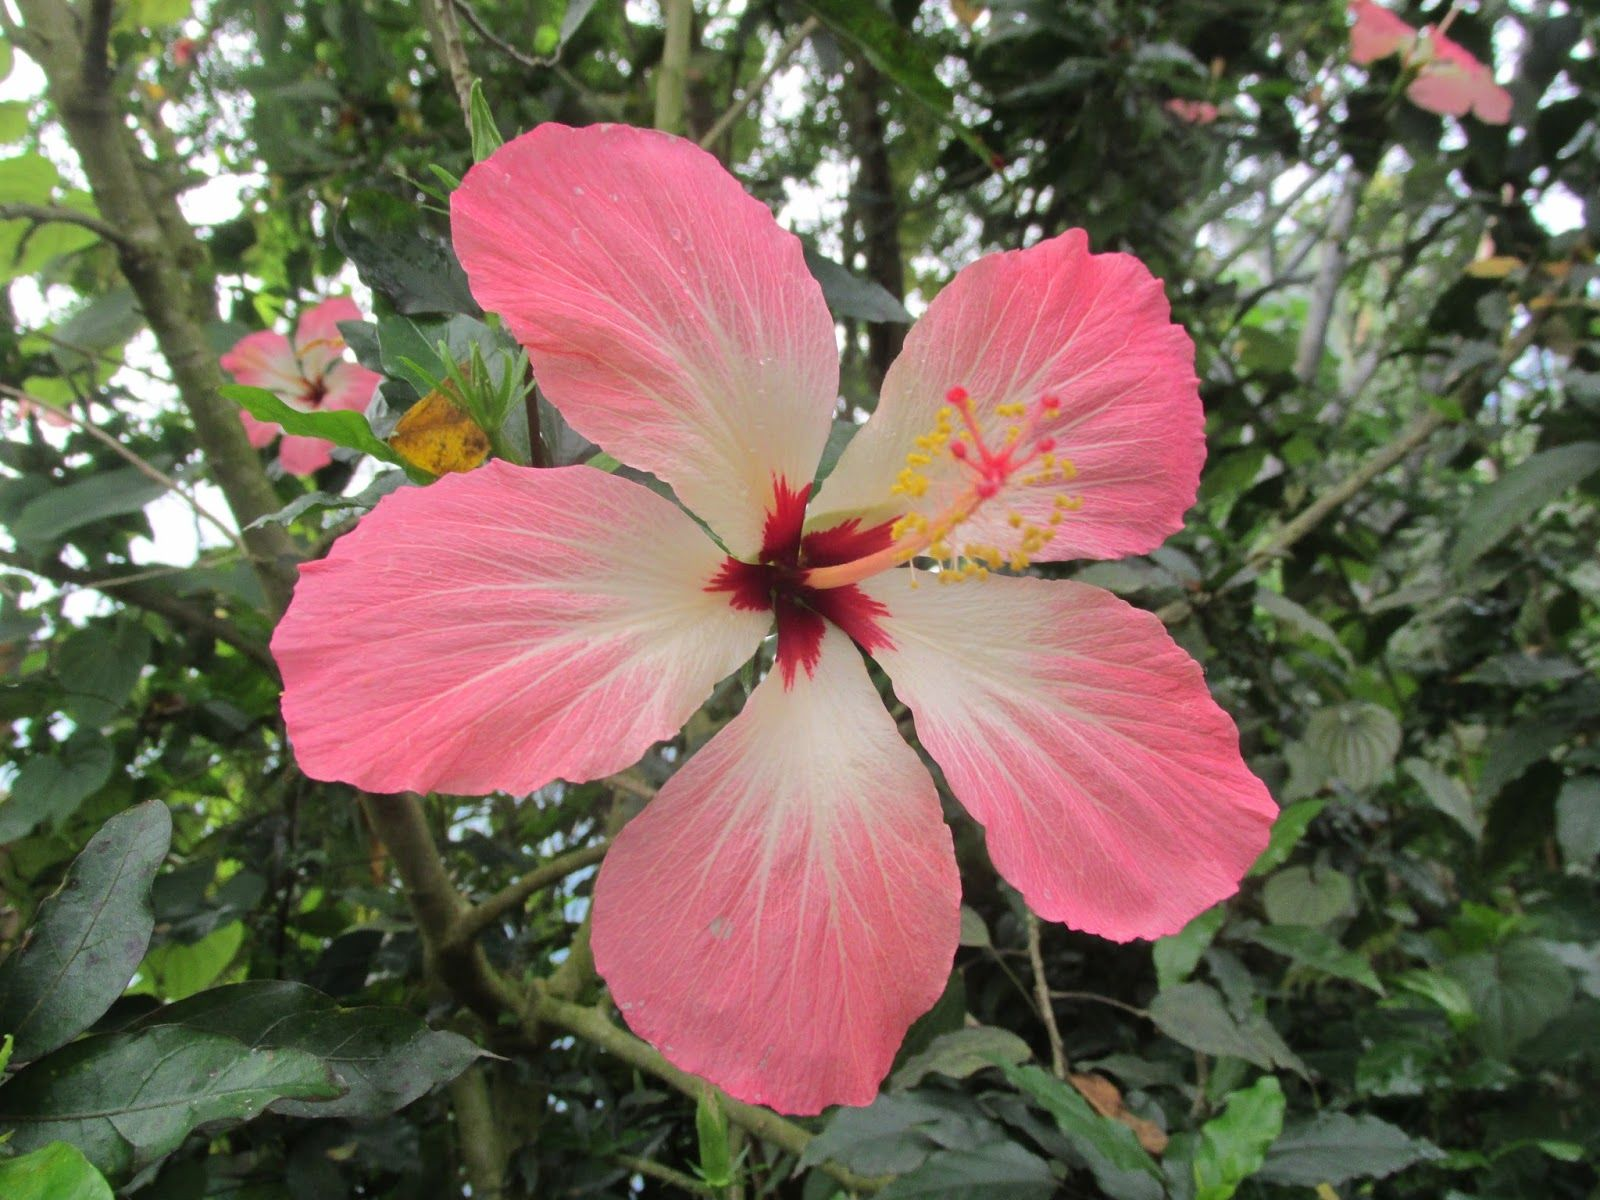 Exotic rainforest flowers google search 15ss pinterest flowers exotic rainforest flowers google search izmirmasajfo Gallery